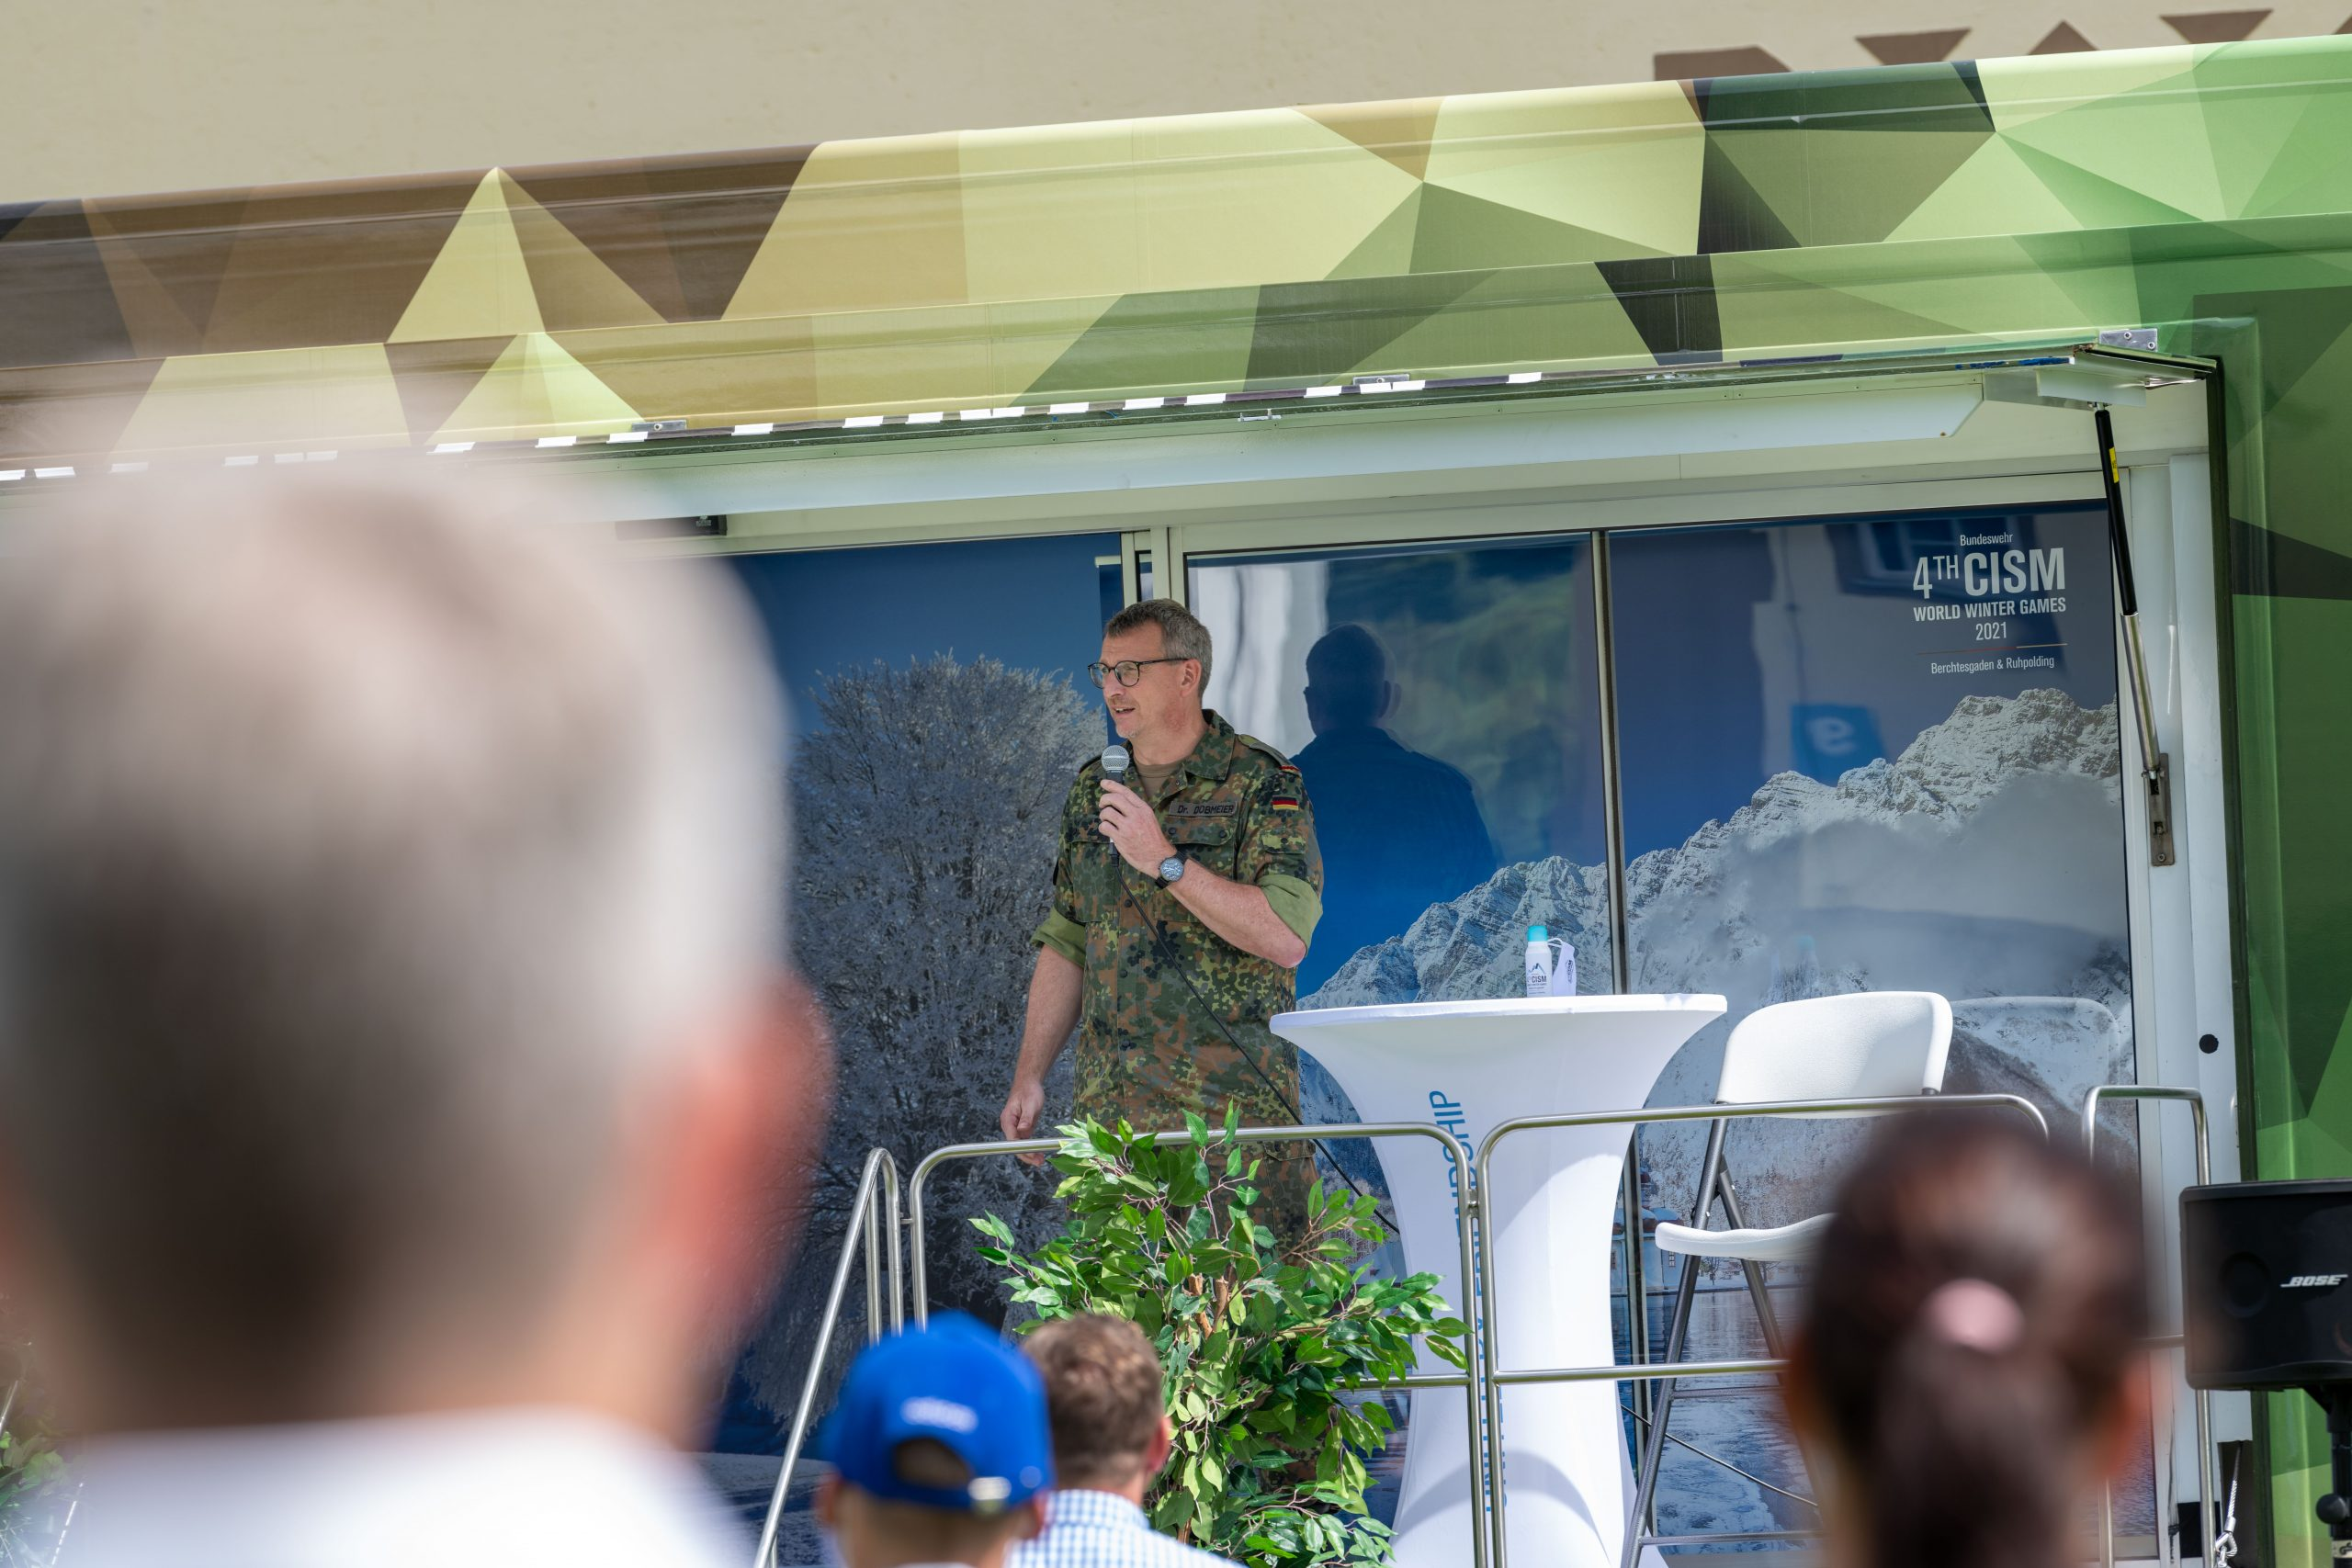 Lieutenant Colonel Dr. Dobmeier, the chief of the Organizing Staff, standing on the stage and speaking into a microphone